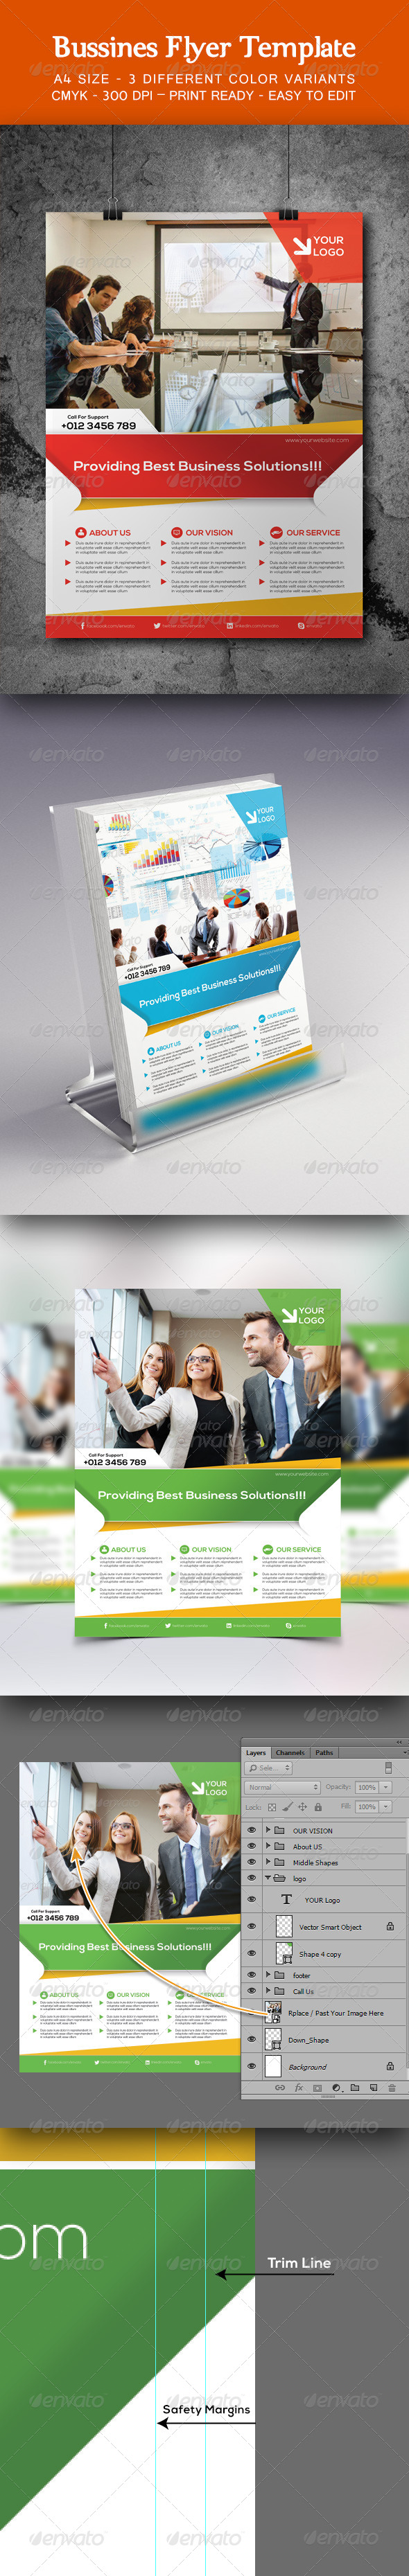 Bussines Flyer Template  - Corporate Flyers